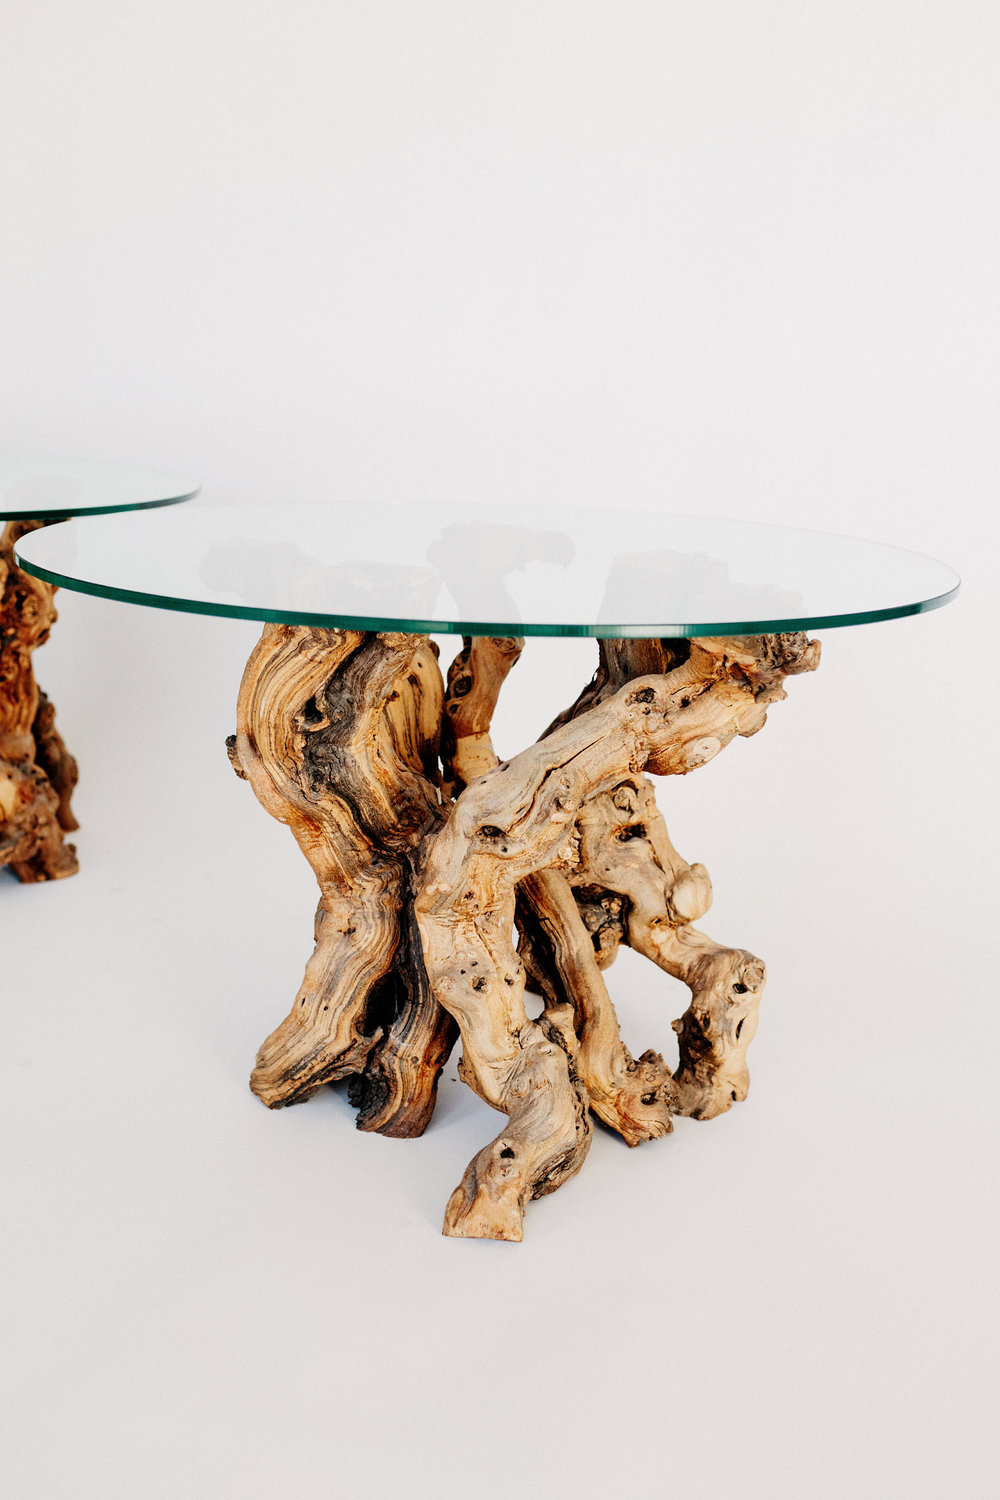 Furniture Rust Vintage Rentals - Grapevine coffee table